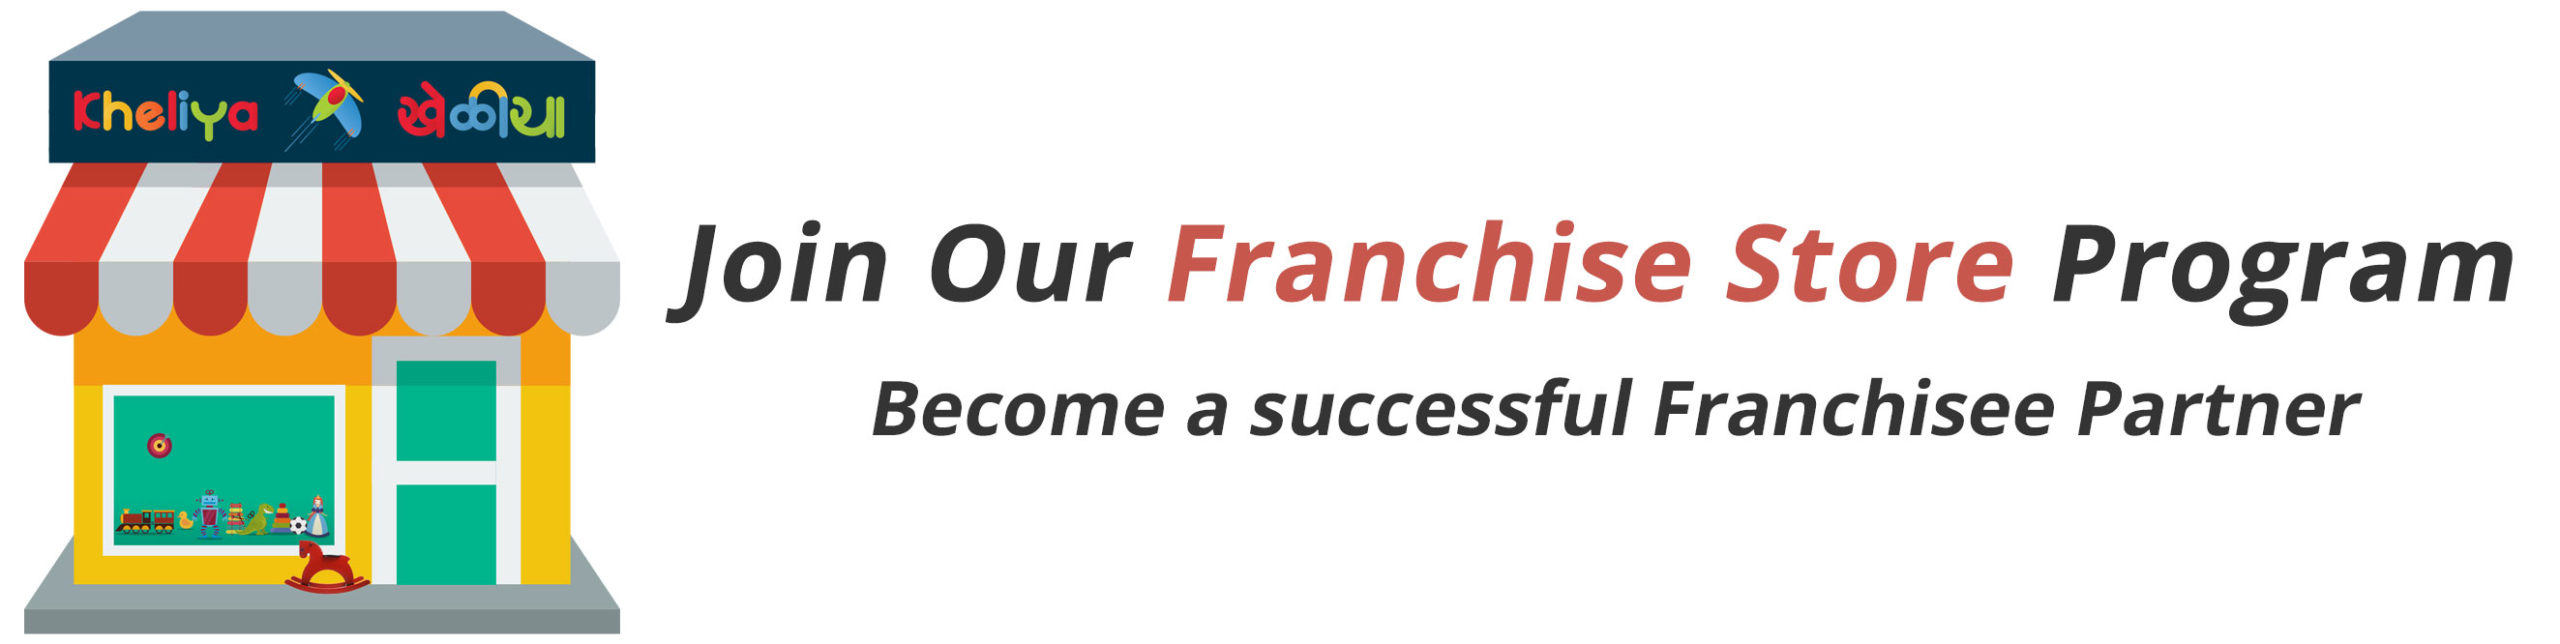 Join Our Franchise Store Program